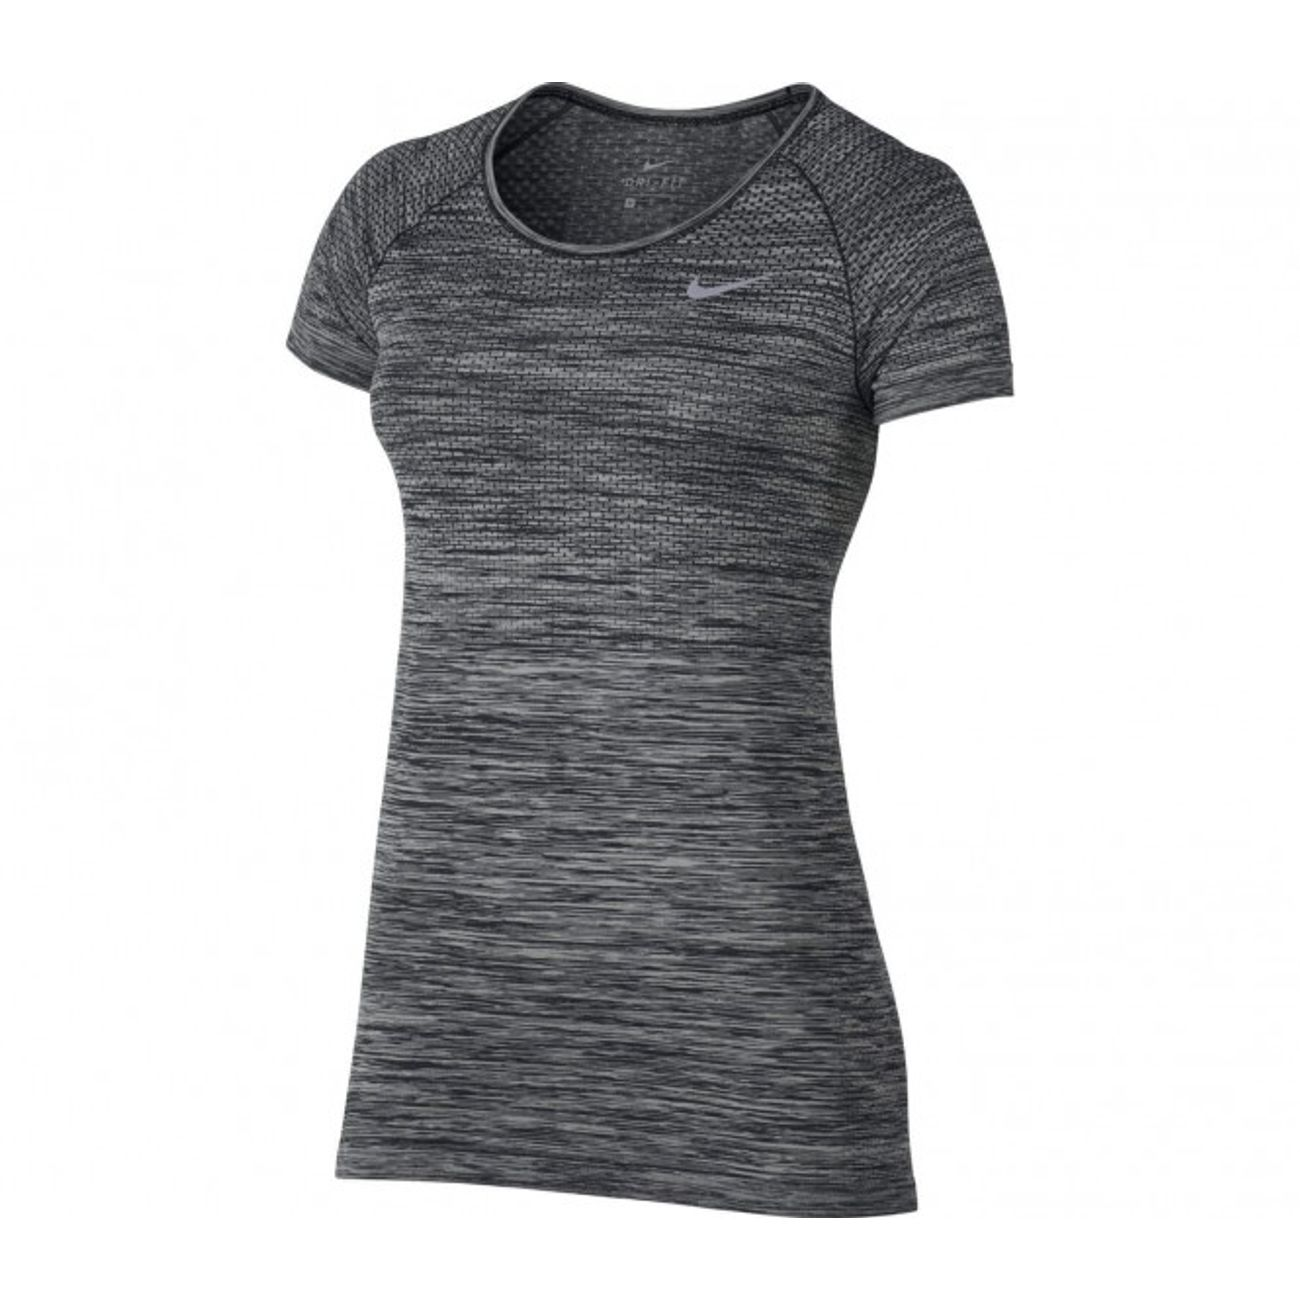 chaussure nike pas cher site fiable, Nike Tee shirt Dri Fit